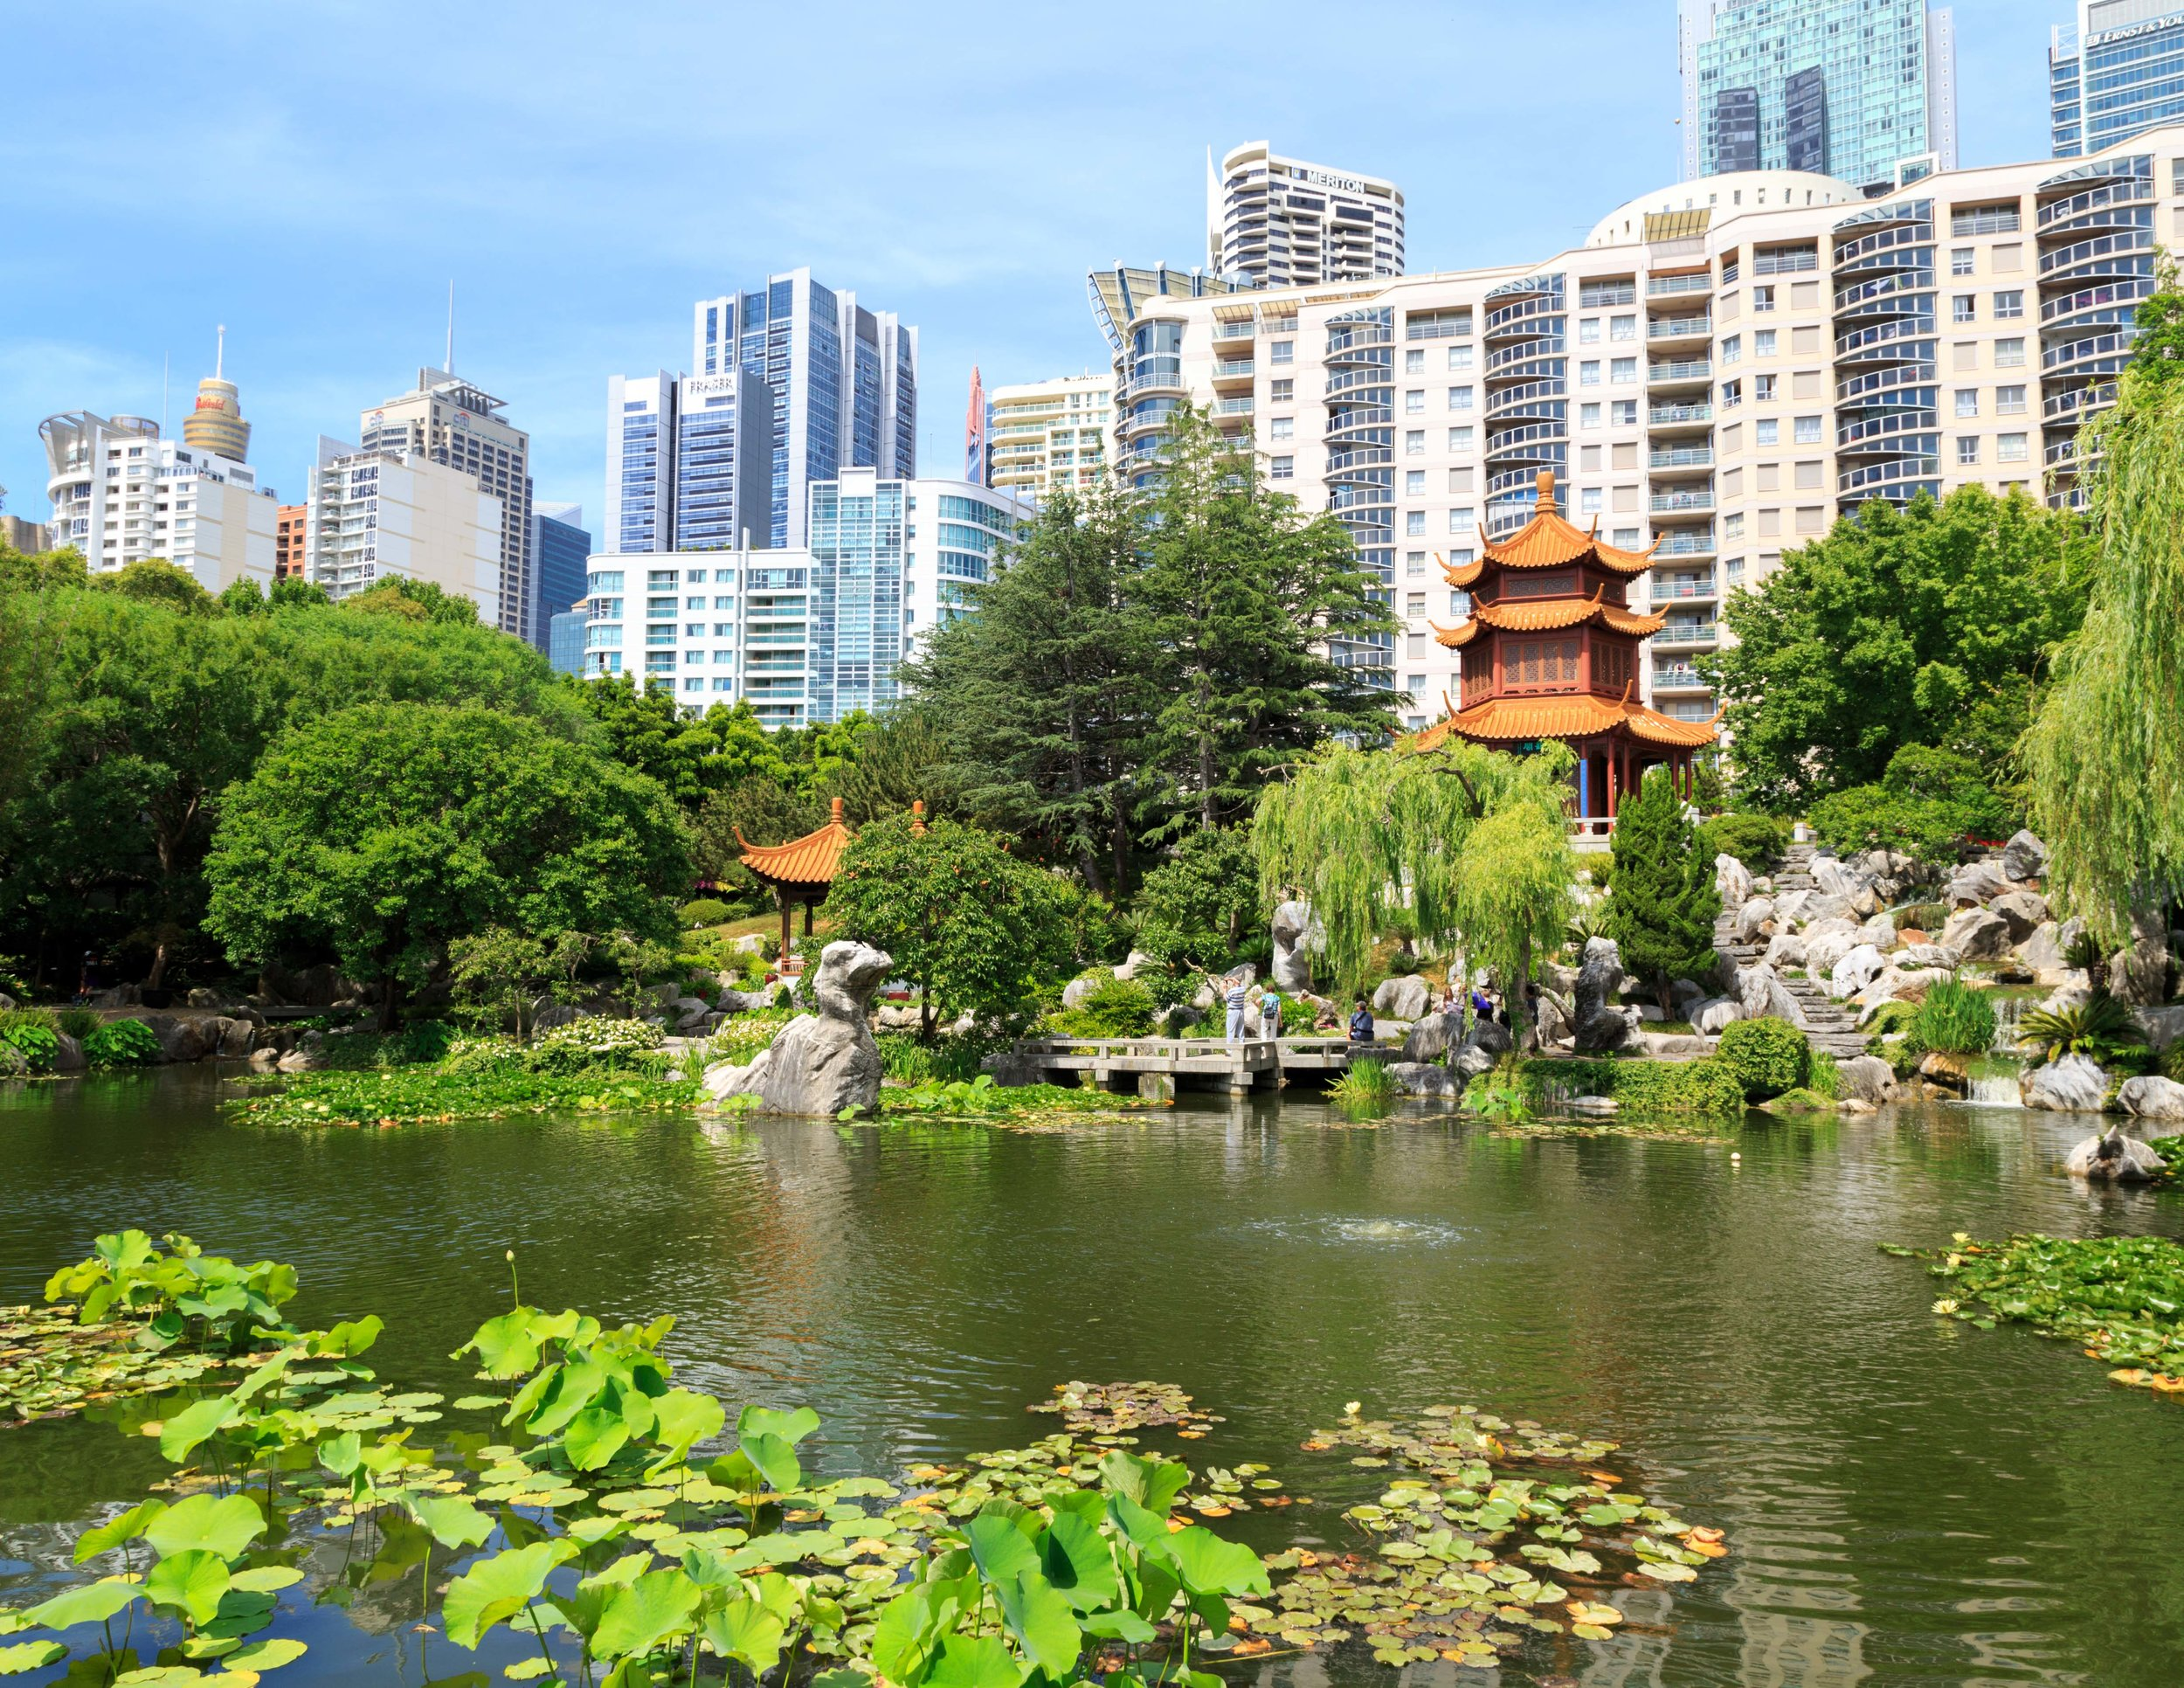 Best things to do in Darling Harbour: Chinese Friendship Garden